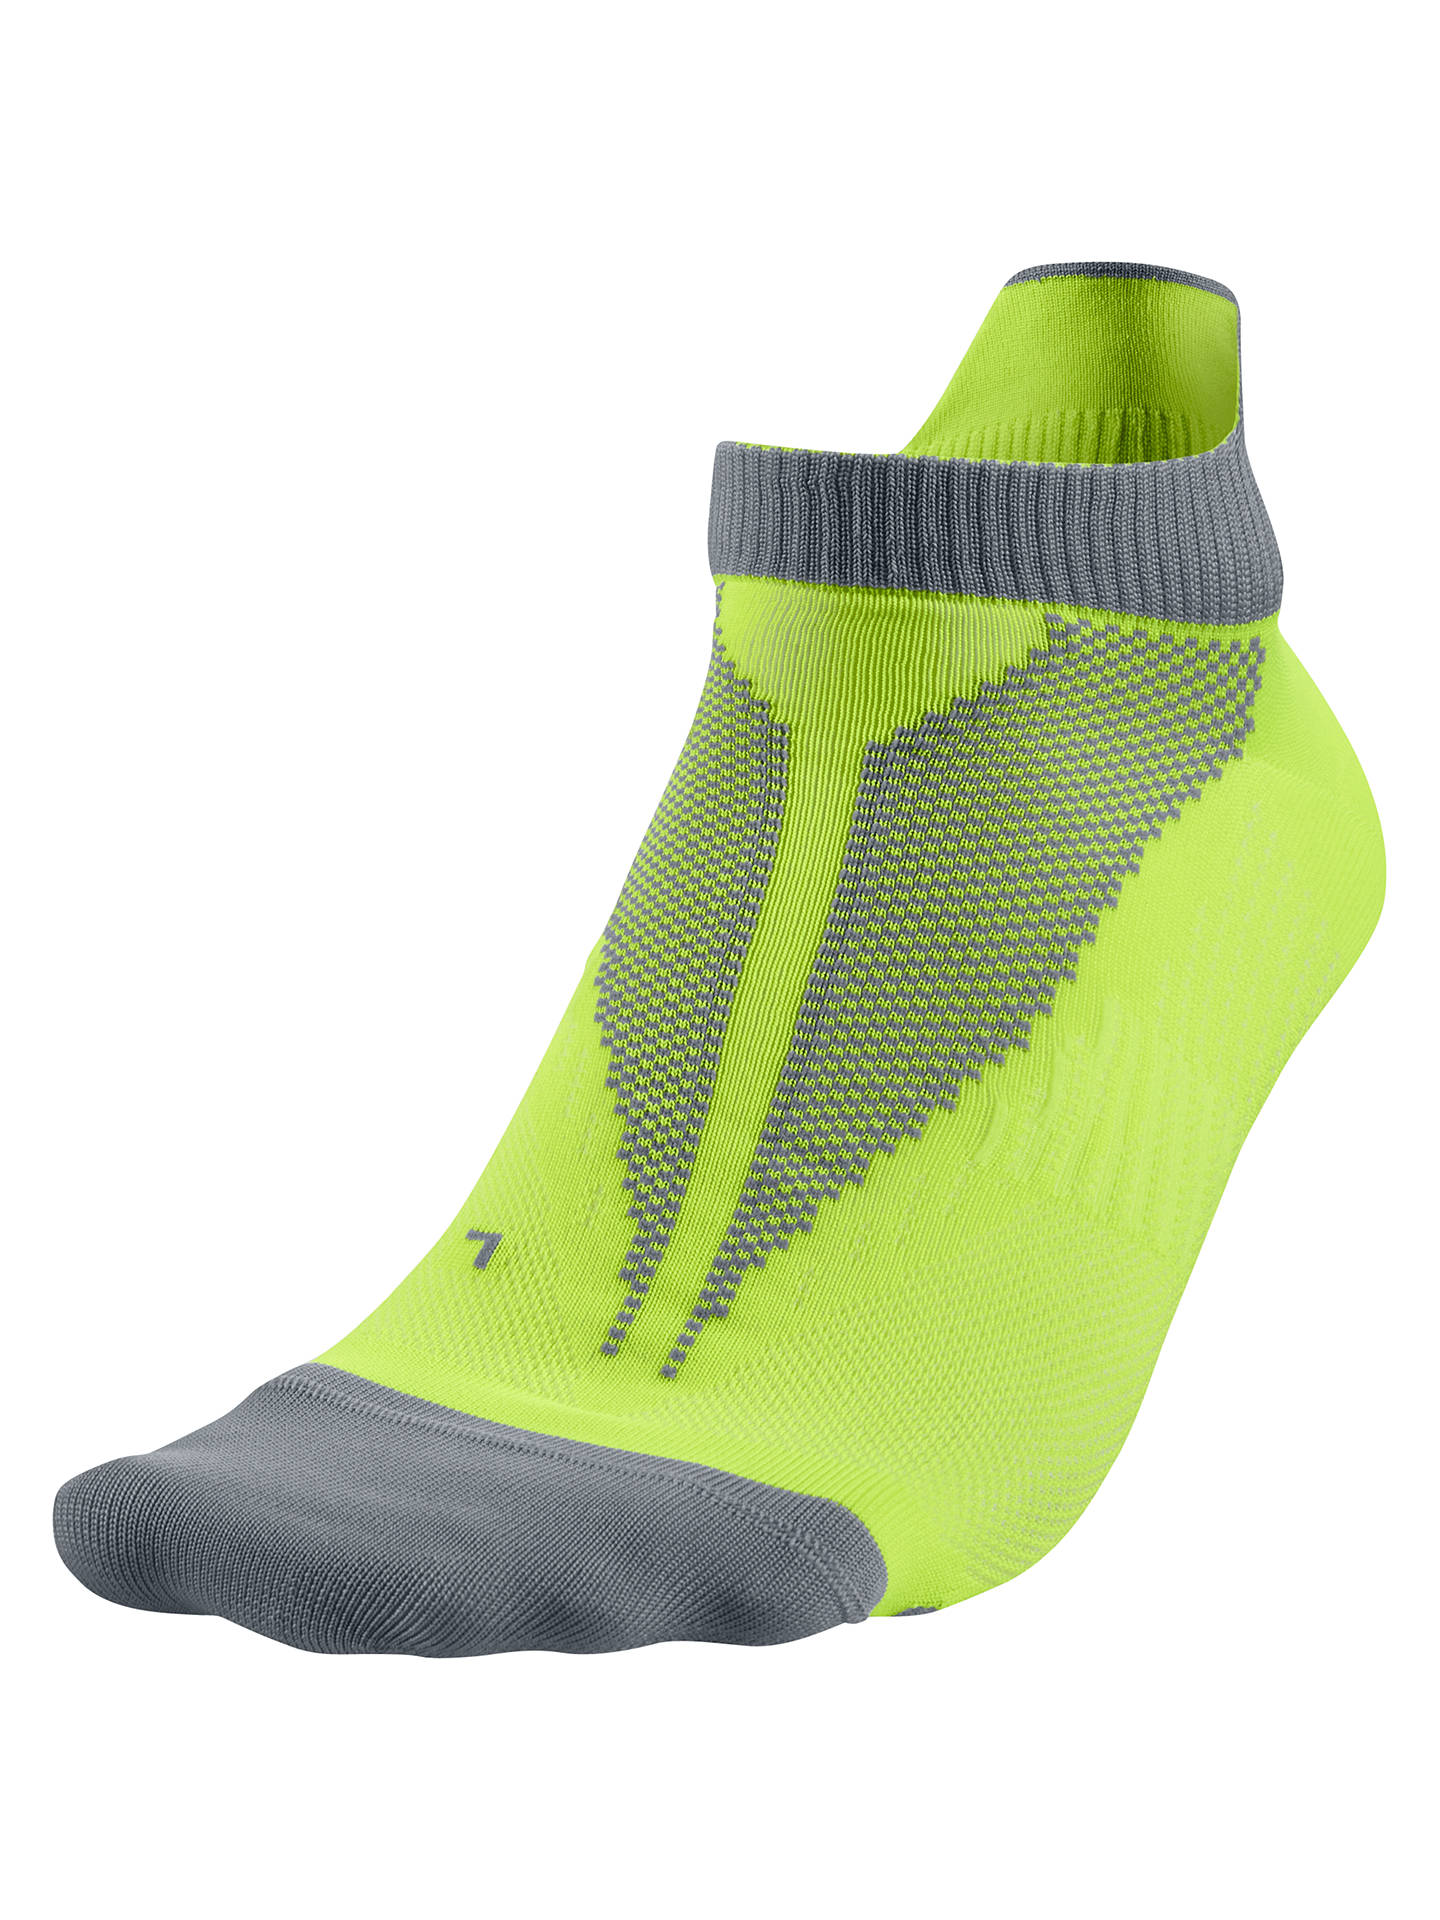 size 40 discount new lower prices Nike Elite Lightweight No-Show Tab Running Socks at John ...